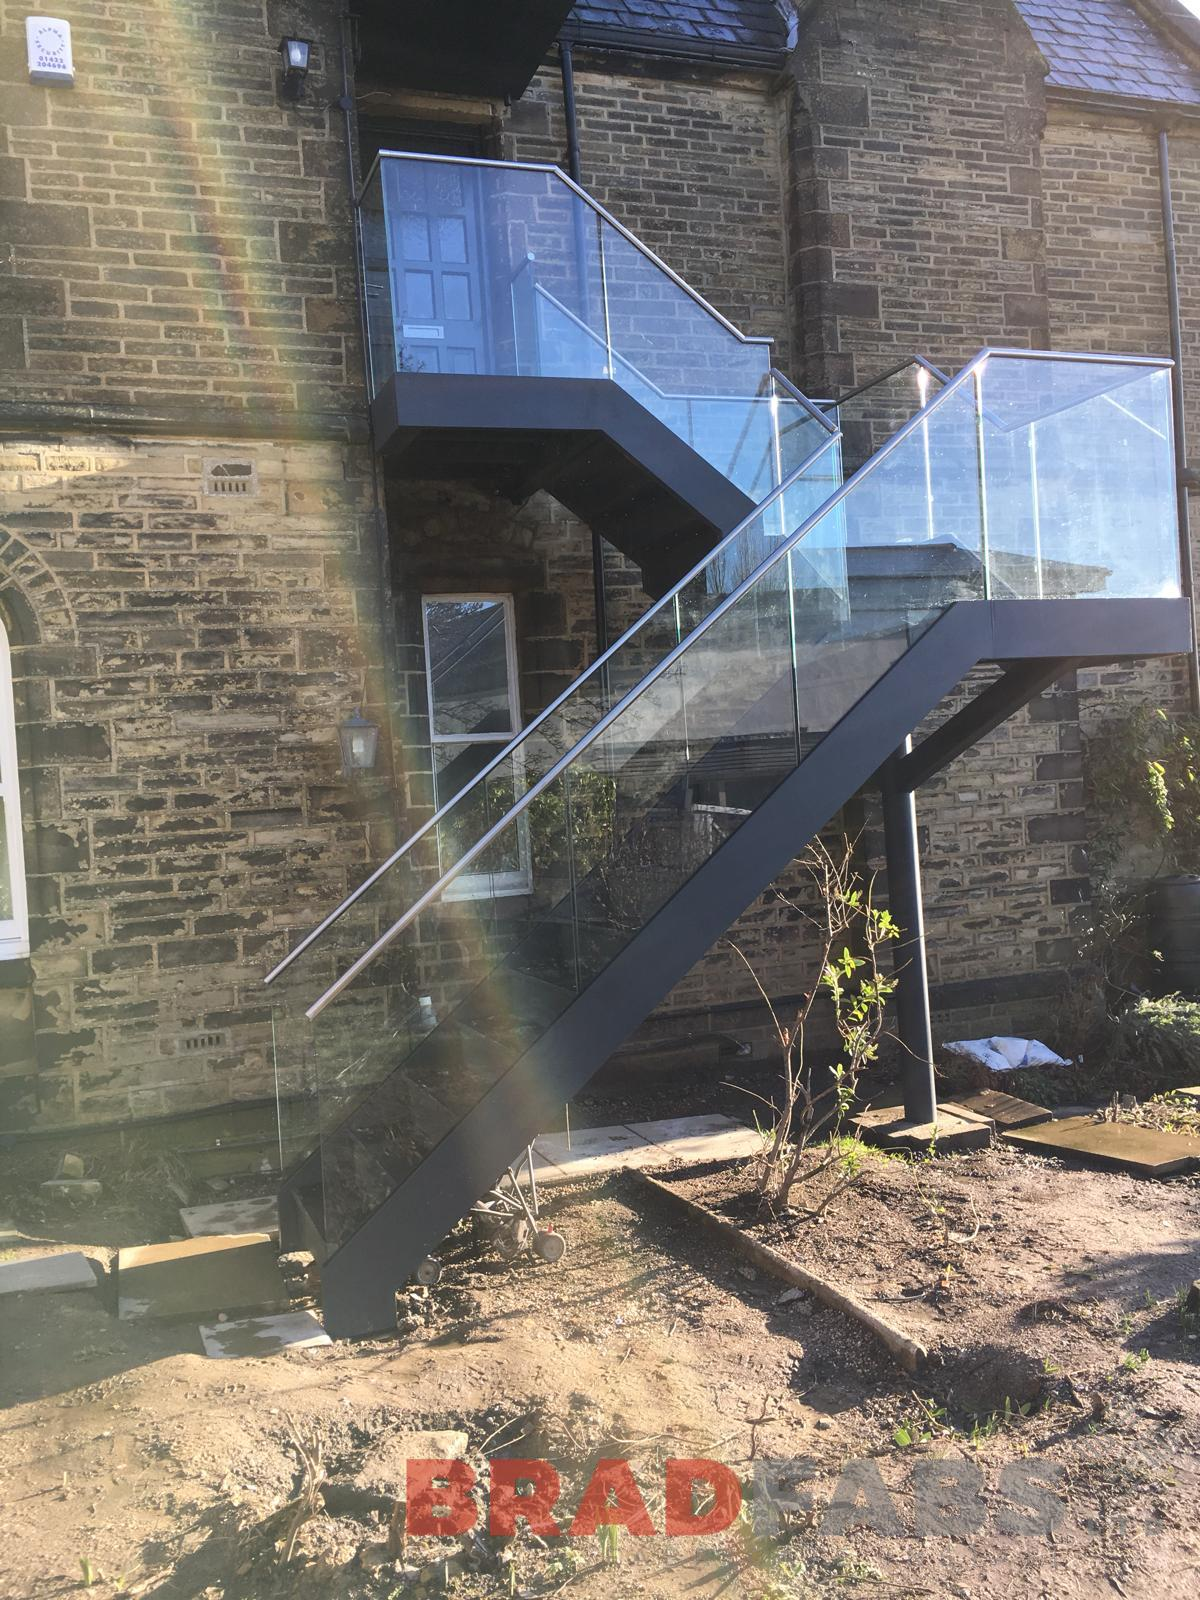 beautiful bespoke external straight staircase for a residential property, manufactured in mild steel, galvanised and powder coated with infinity glass balustrade and stainless steel handrail, with composite decked flooring by Bradfabs Ltd